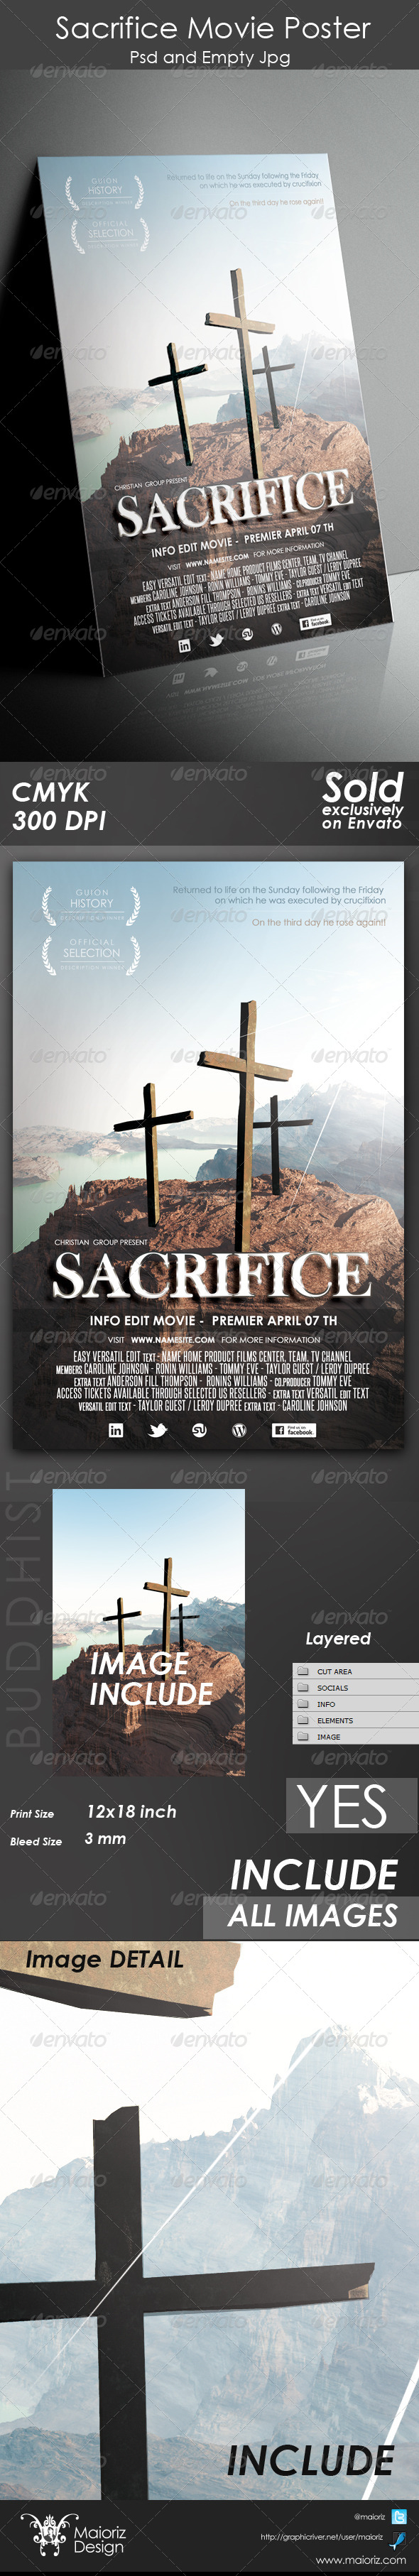 Sacrifice Movie Poster - Church Flyers